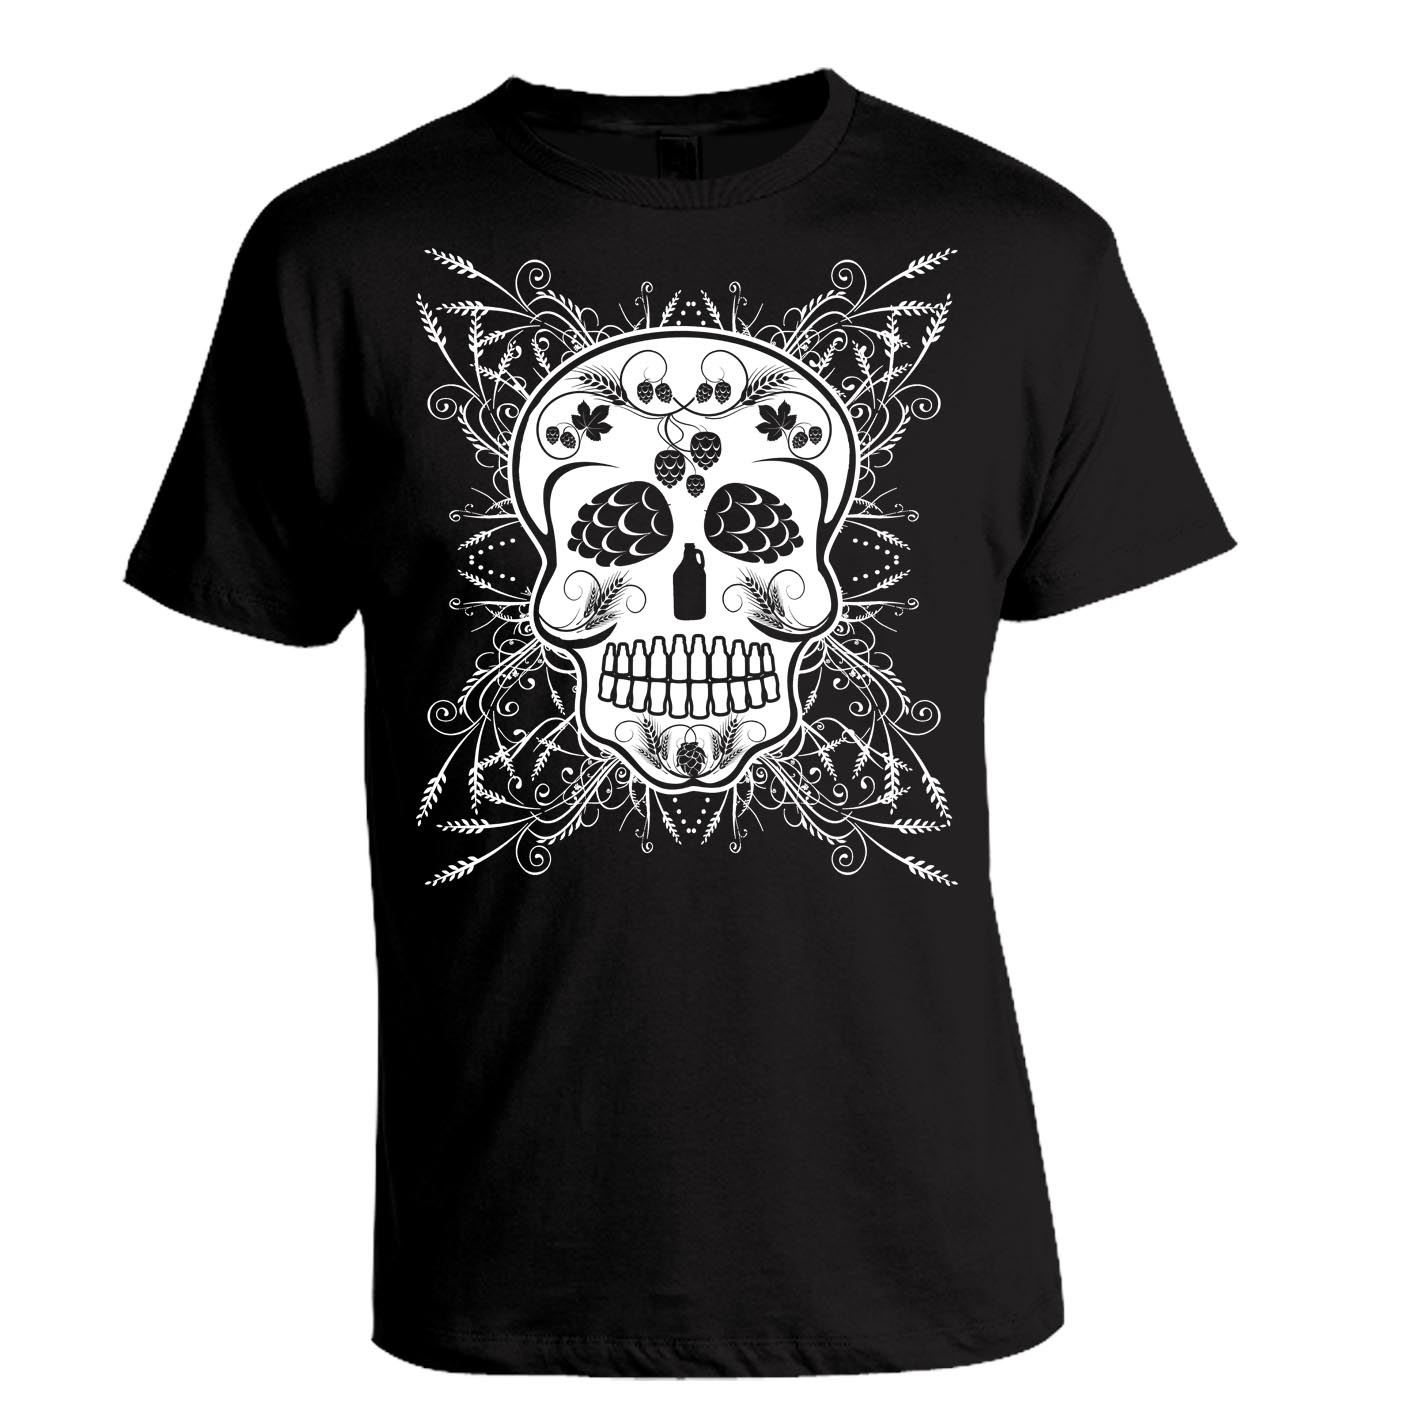 Craft beer sugar skull t shirt for Craft brewery t shirts